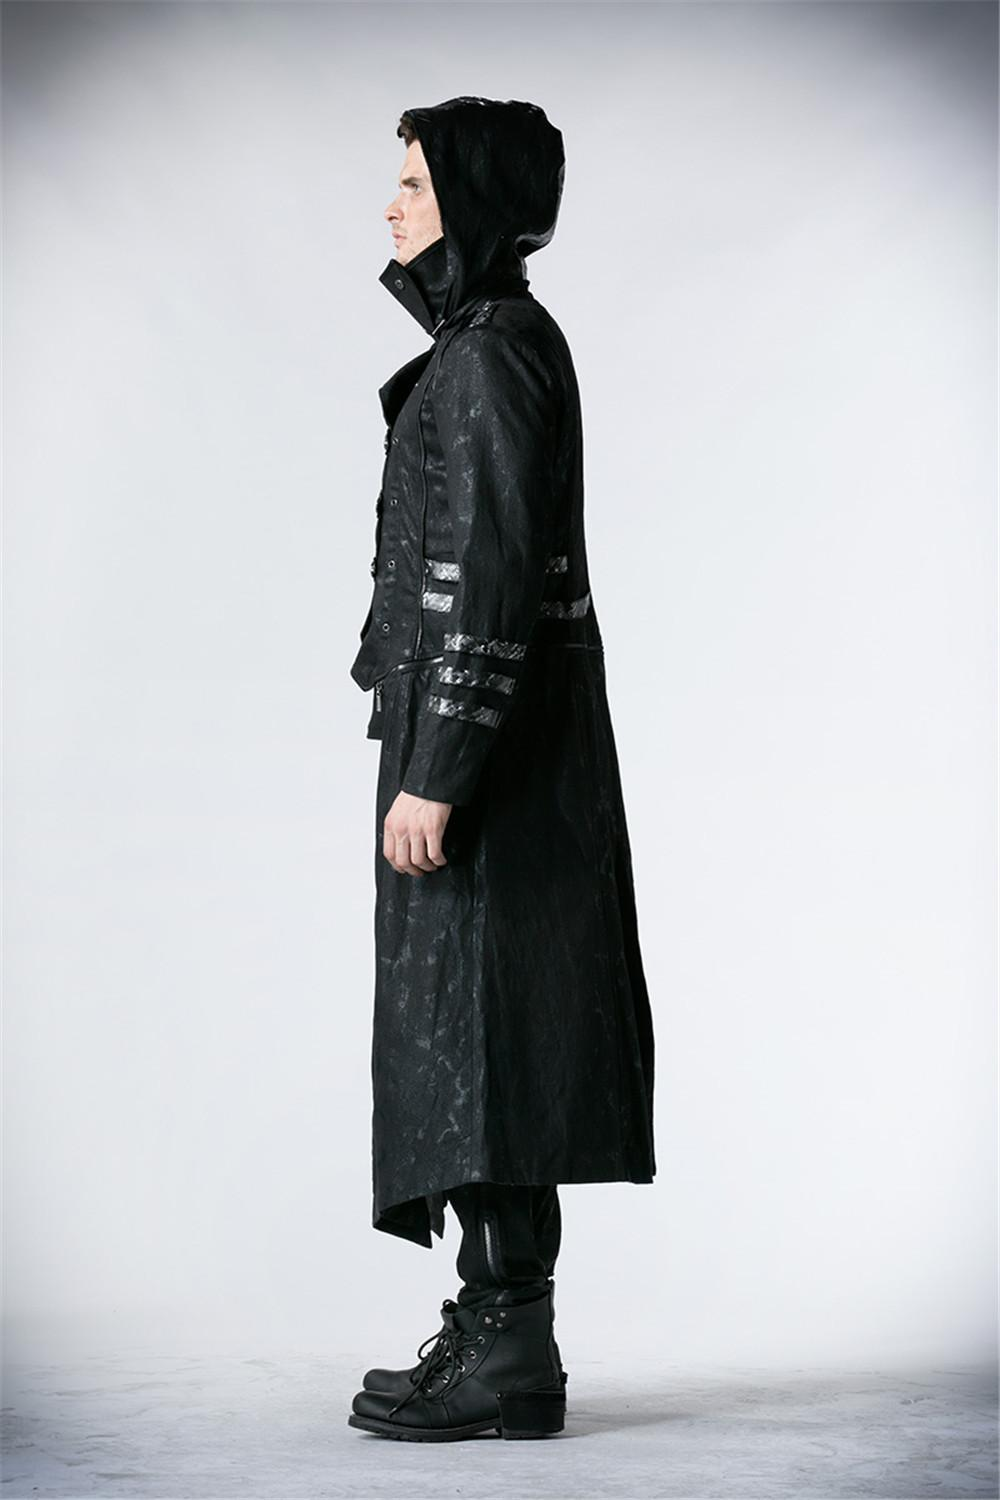 Steampunk Men Trench Coats Black Strentch Coats With Leather Gothic Hooded Detachable Long Coats